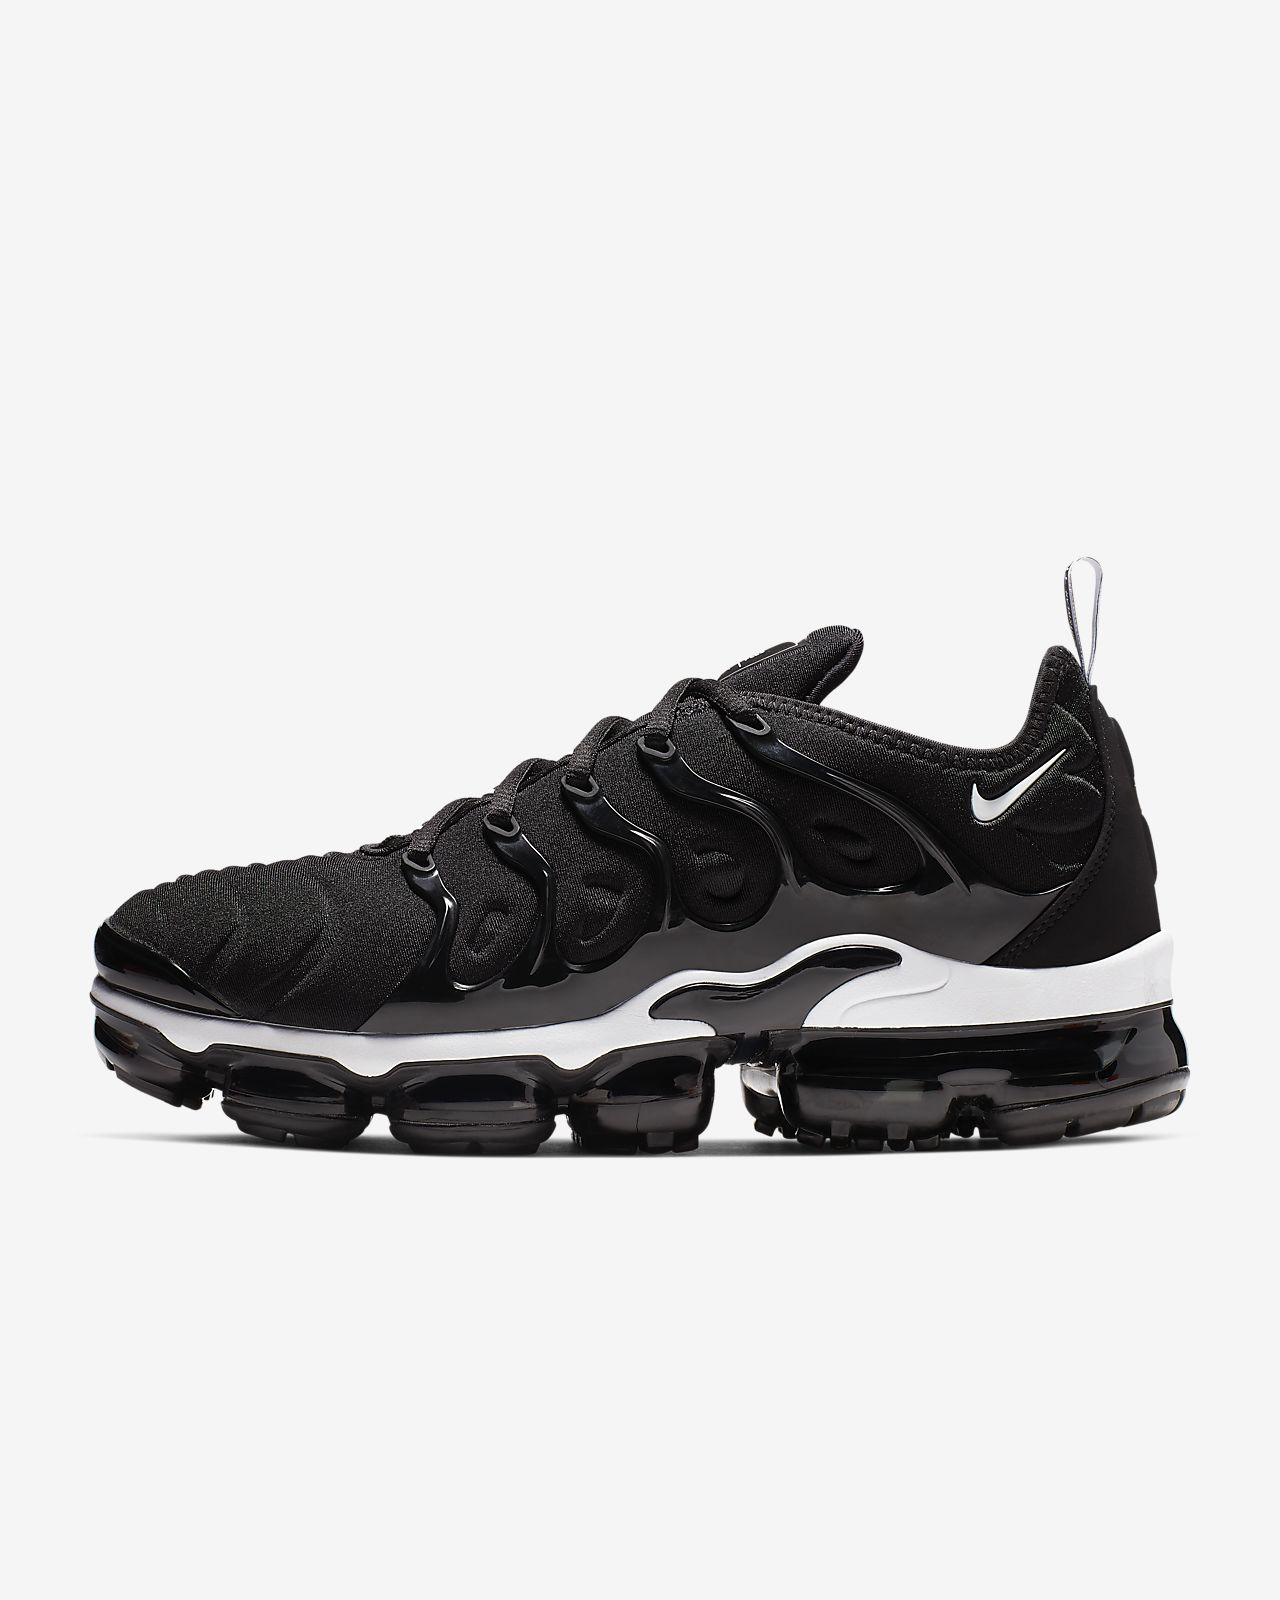 73999a8c526 Nike Air VaporMax Plus Men s Shoe. Nike.com HR